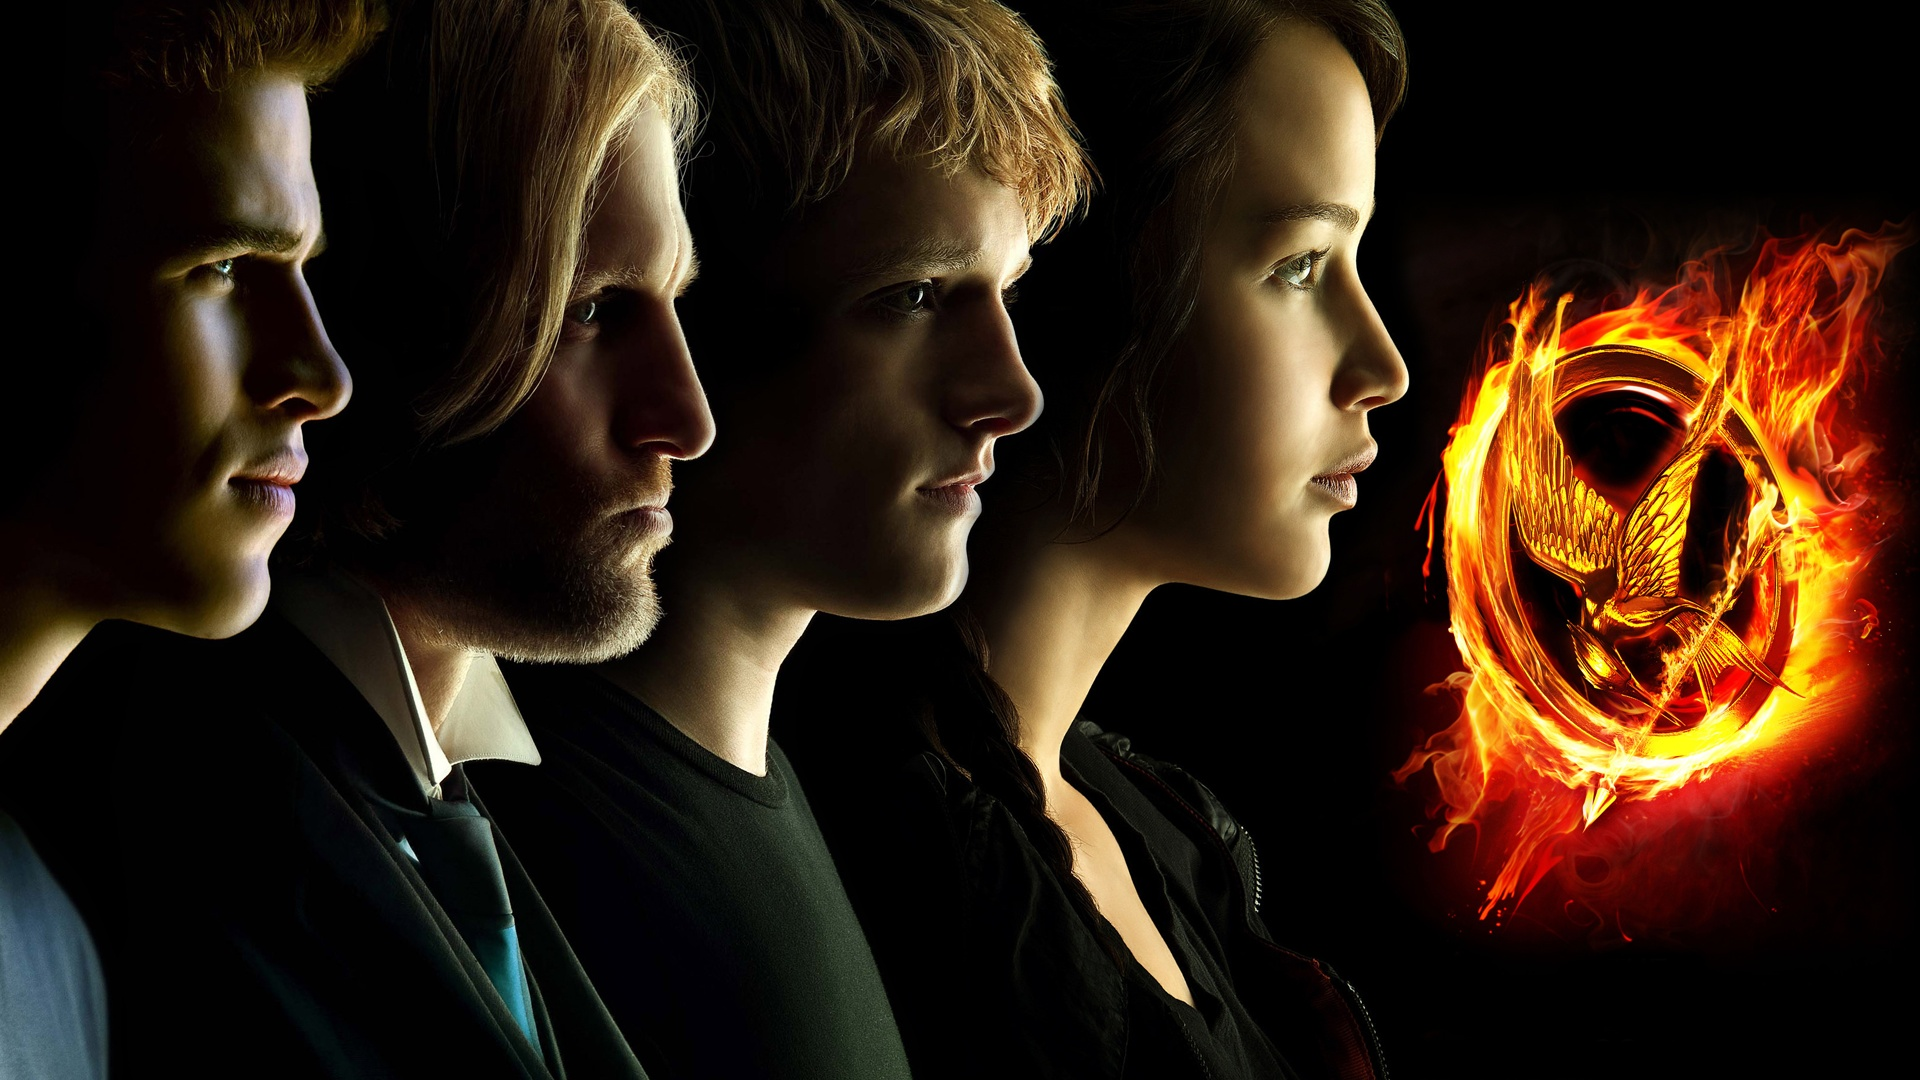 hunger games movie wallpapers - photo #21